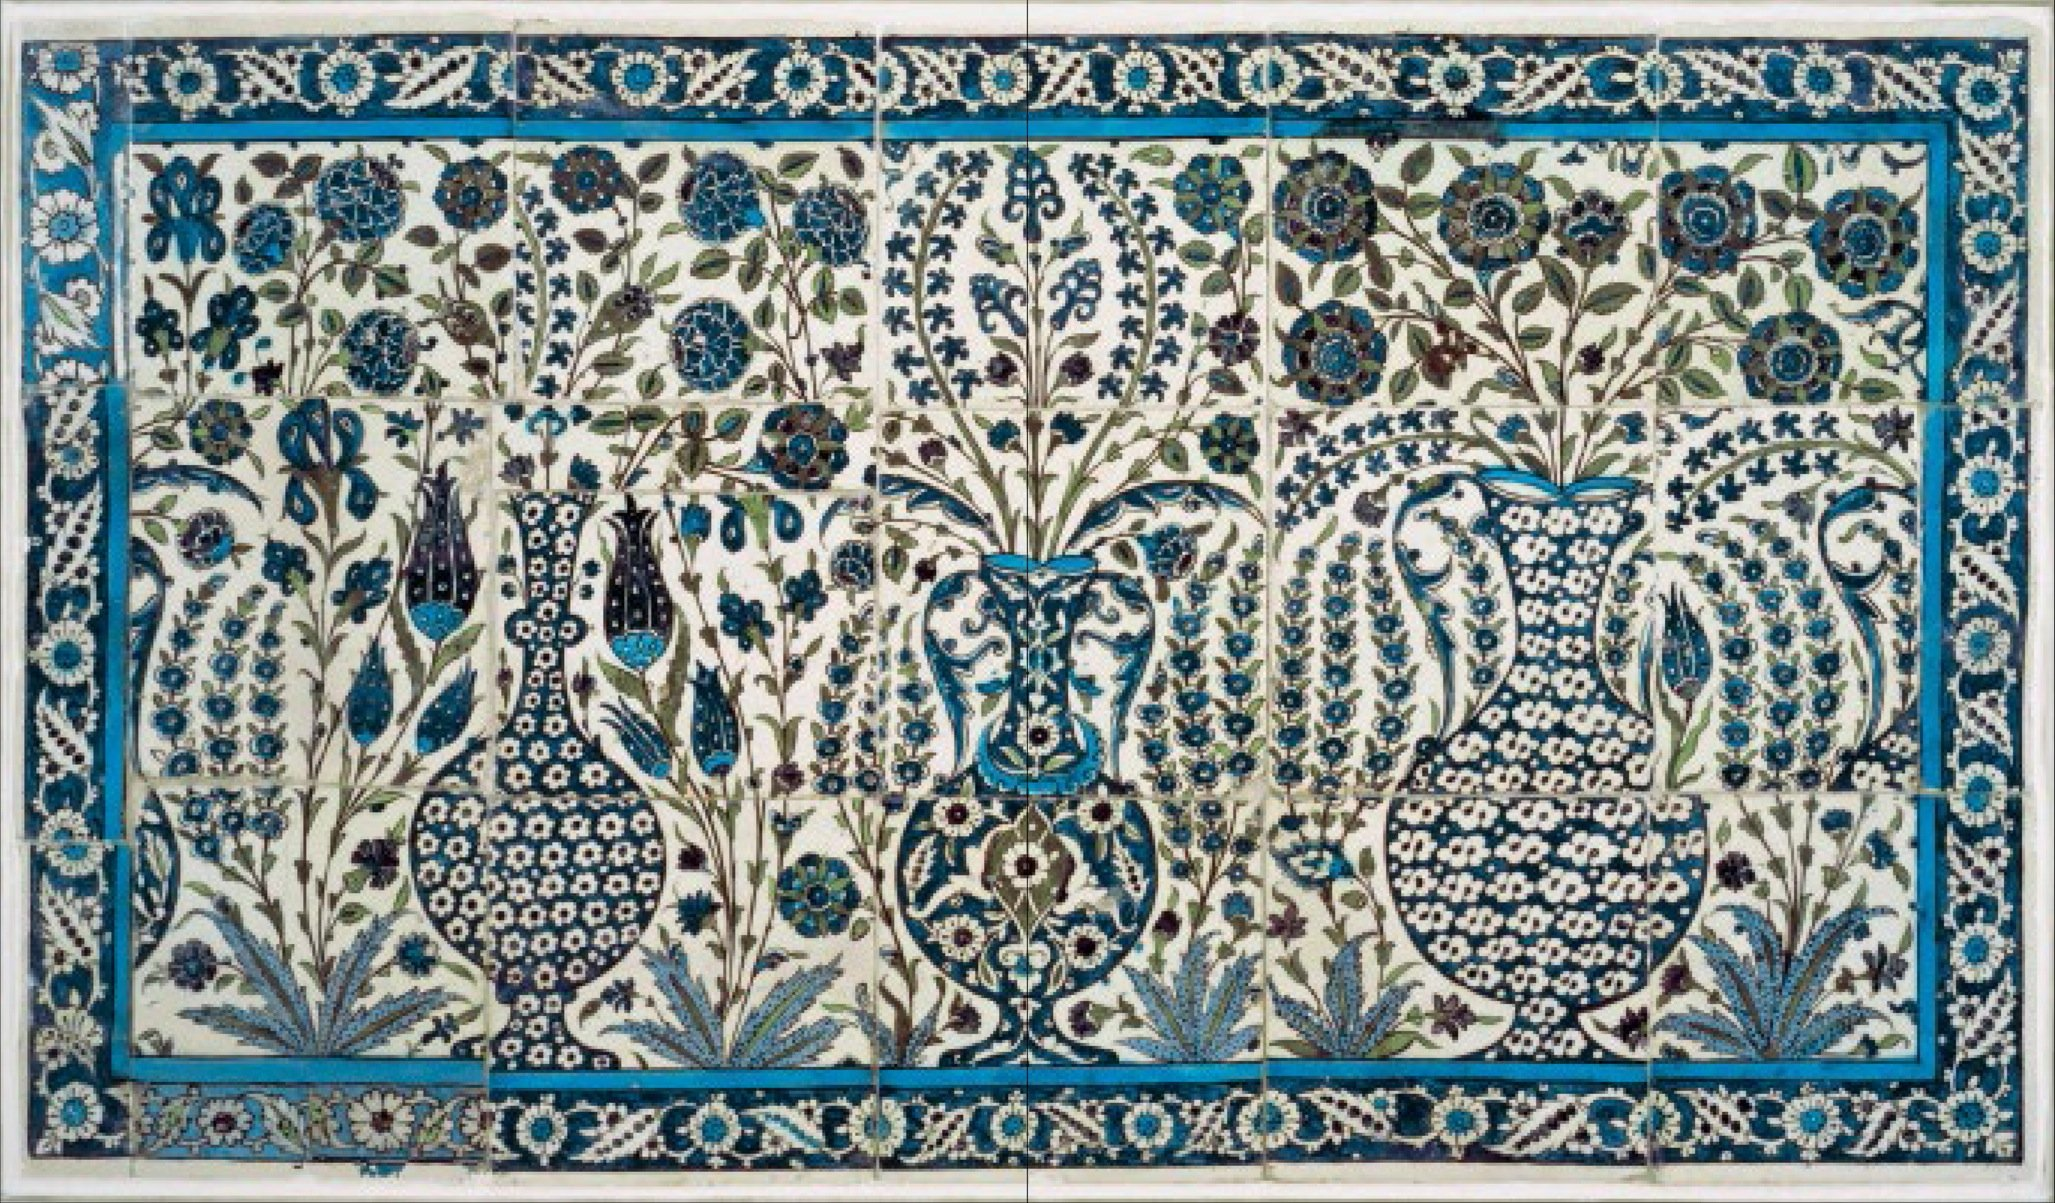 Damascus tiles mamluk and ottoman architectural ceramics from syria damascus tiles mamluk and ottoman architectural ceramics from syria arthur millner sheila r canby 9783791381473 amazon books dailygadgetfo Choice Image